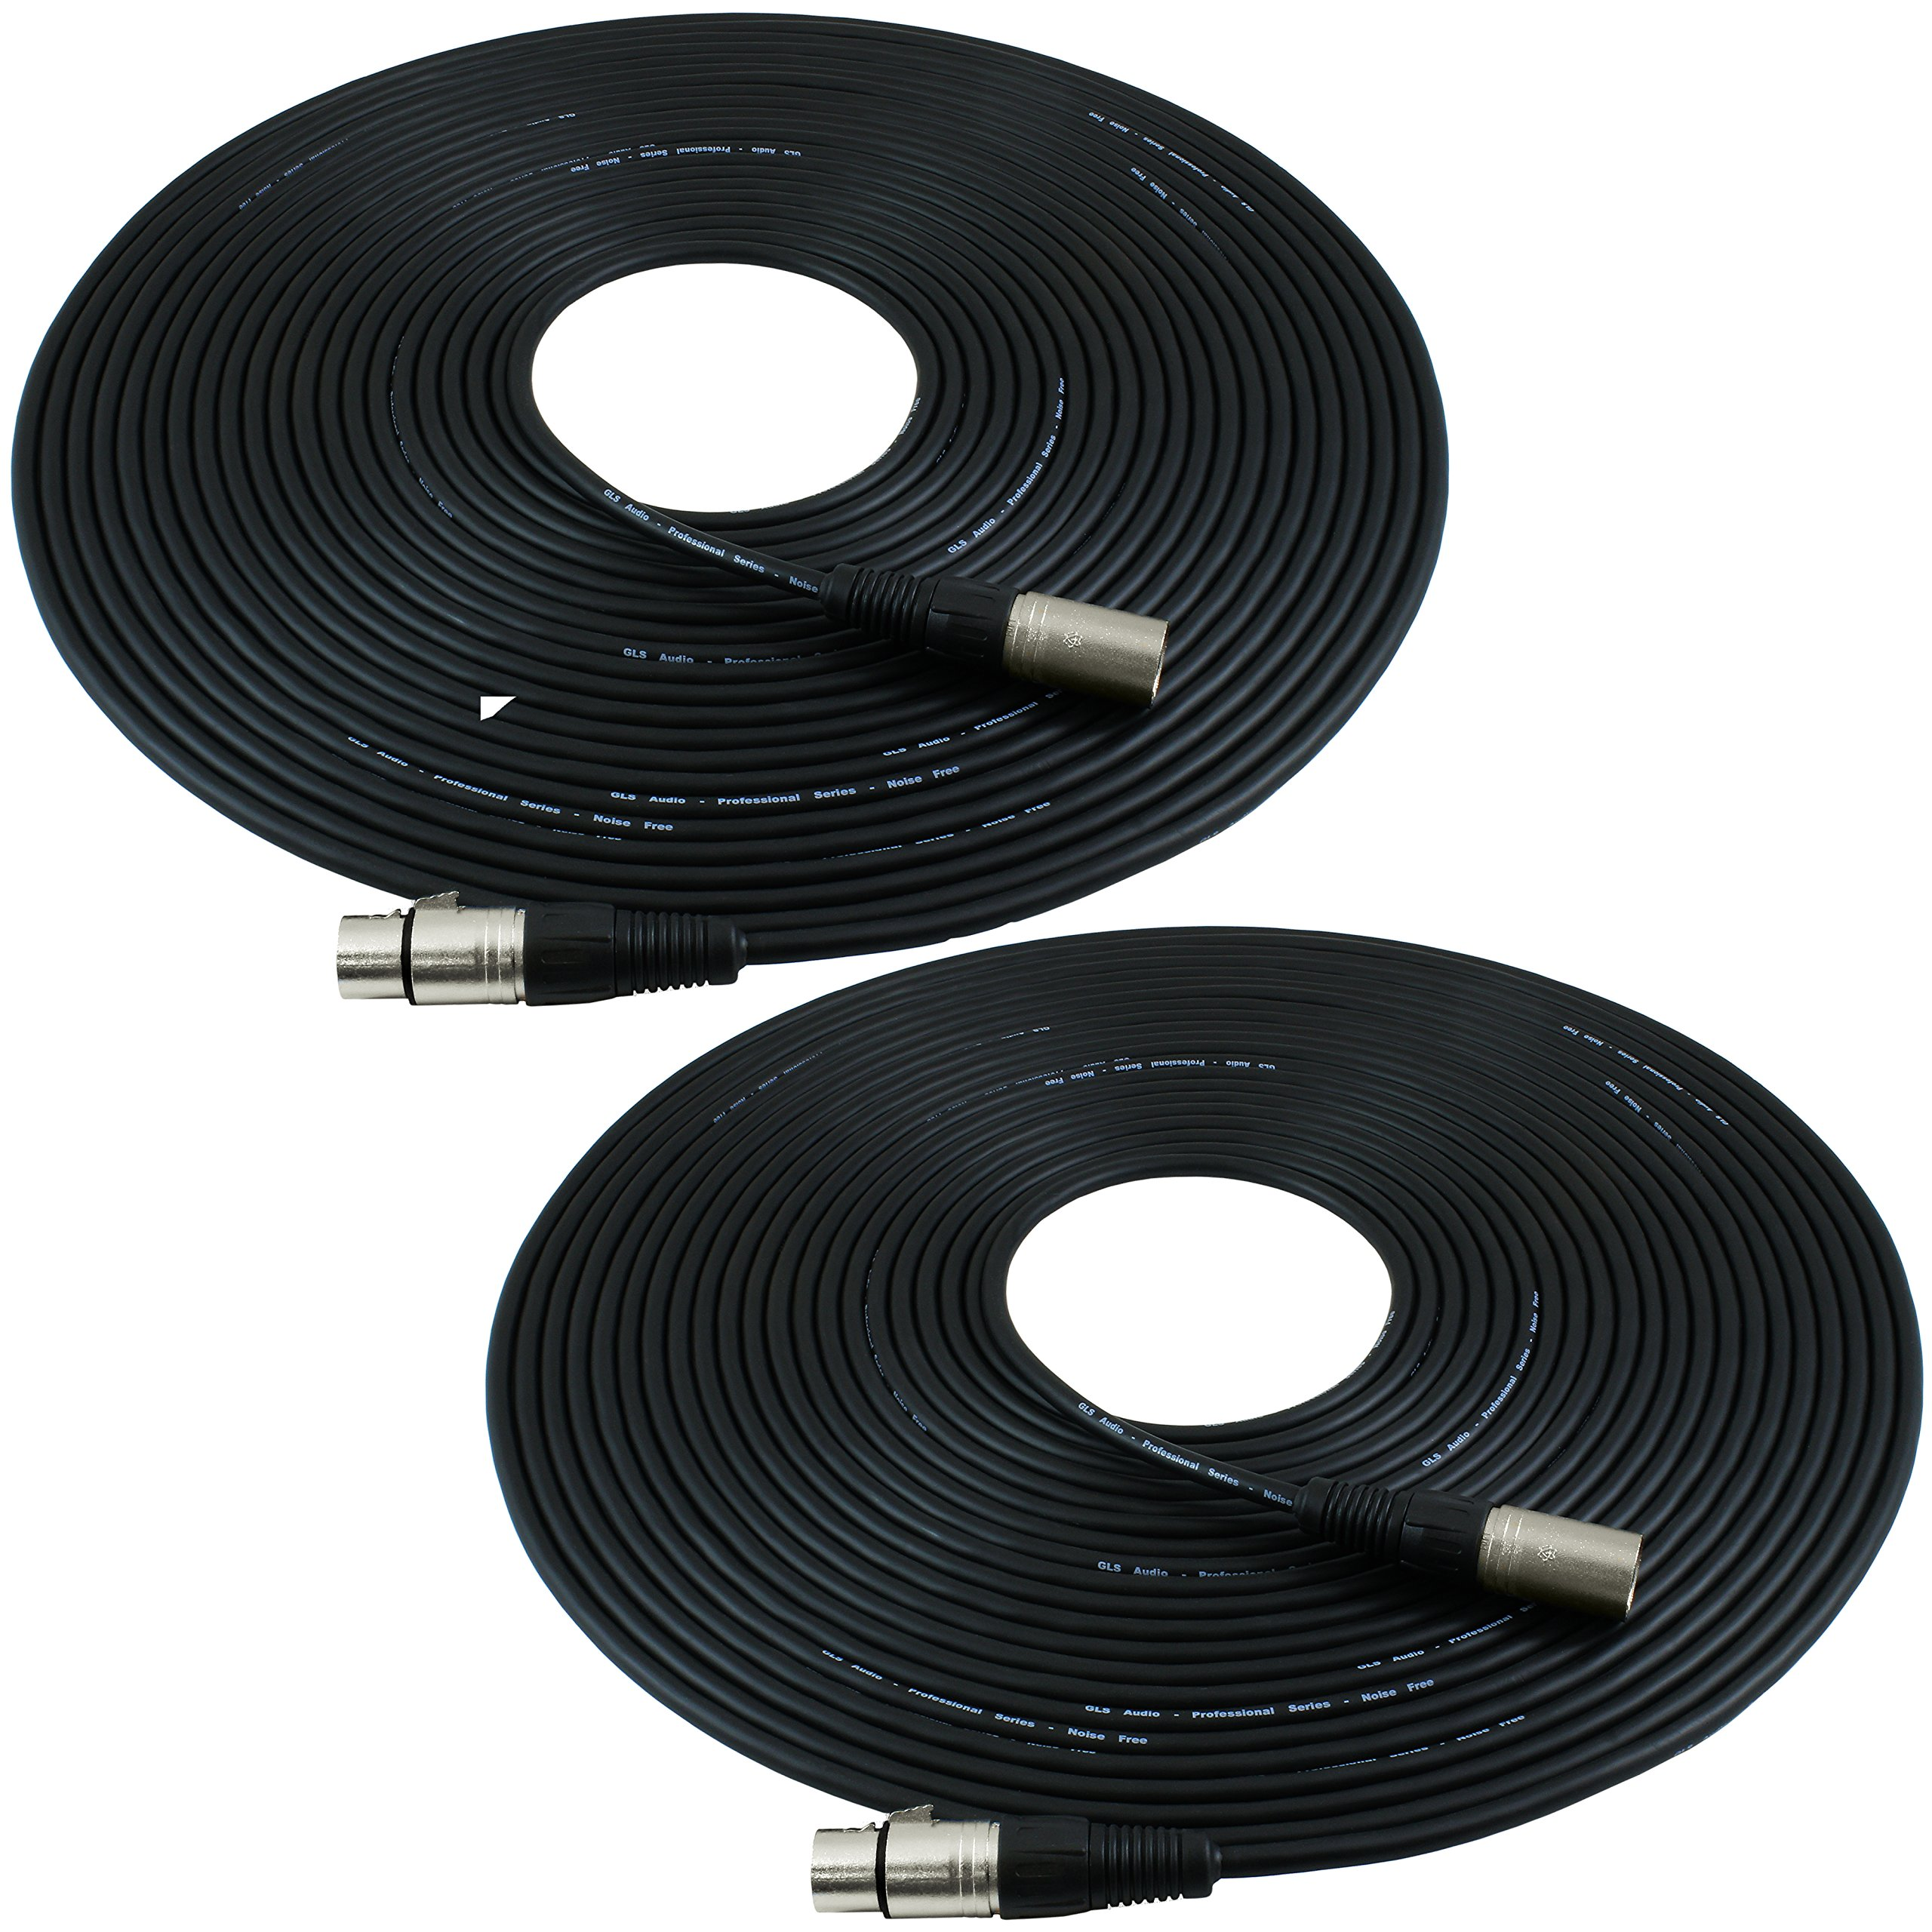 GLS Audio 50ft Mic Cable Patch Cords - XLR Male to XLR Female Black Microphone Cables - 50' Balanced Mike Snake Cord - 2 PACK by GLS Audio